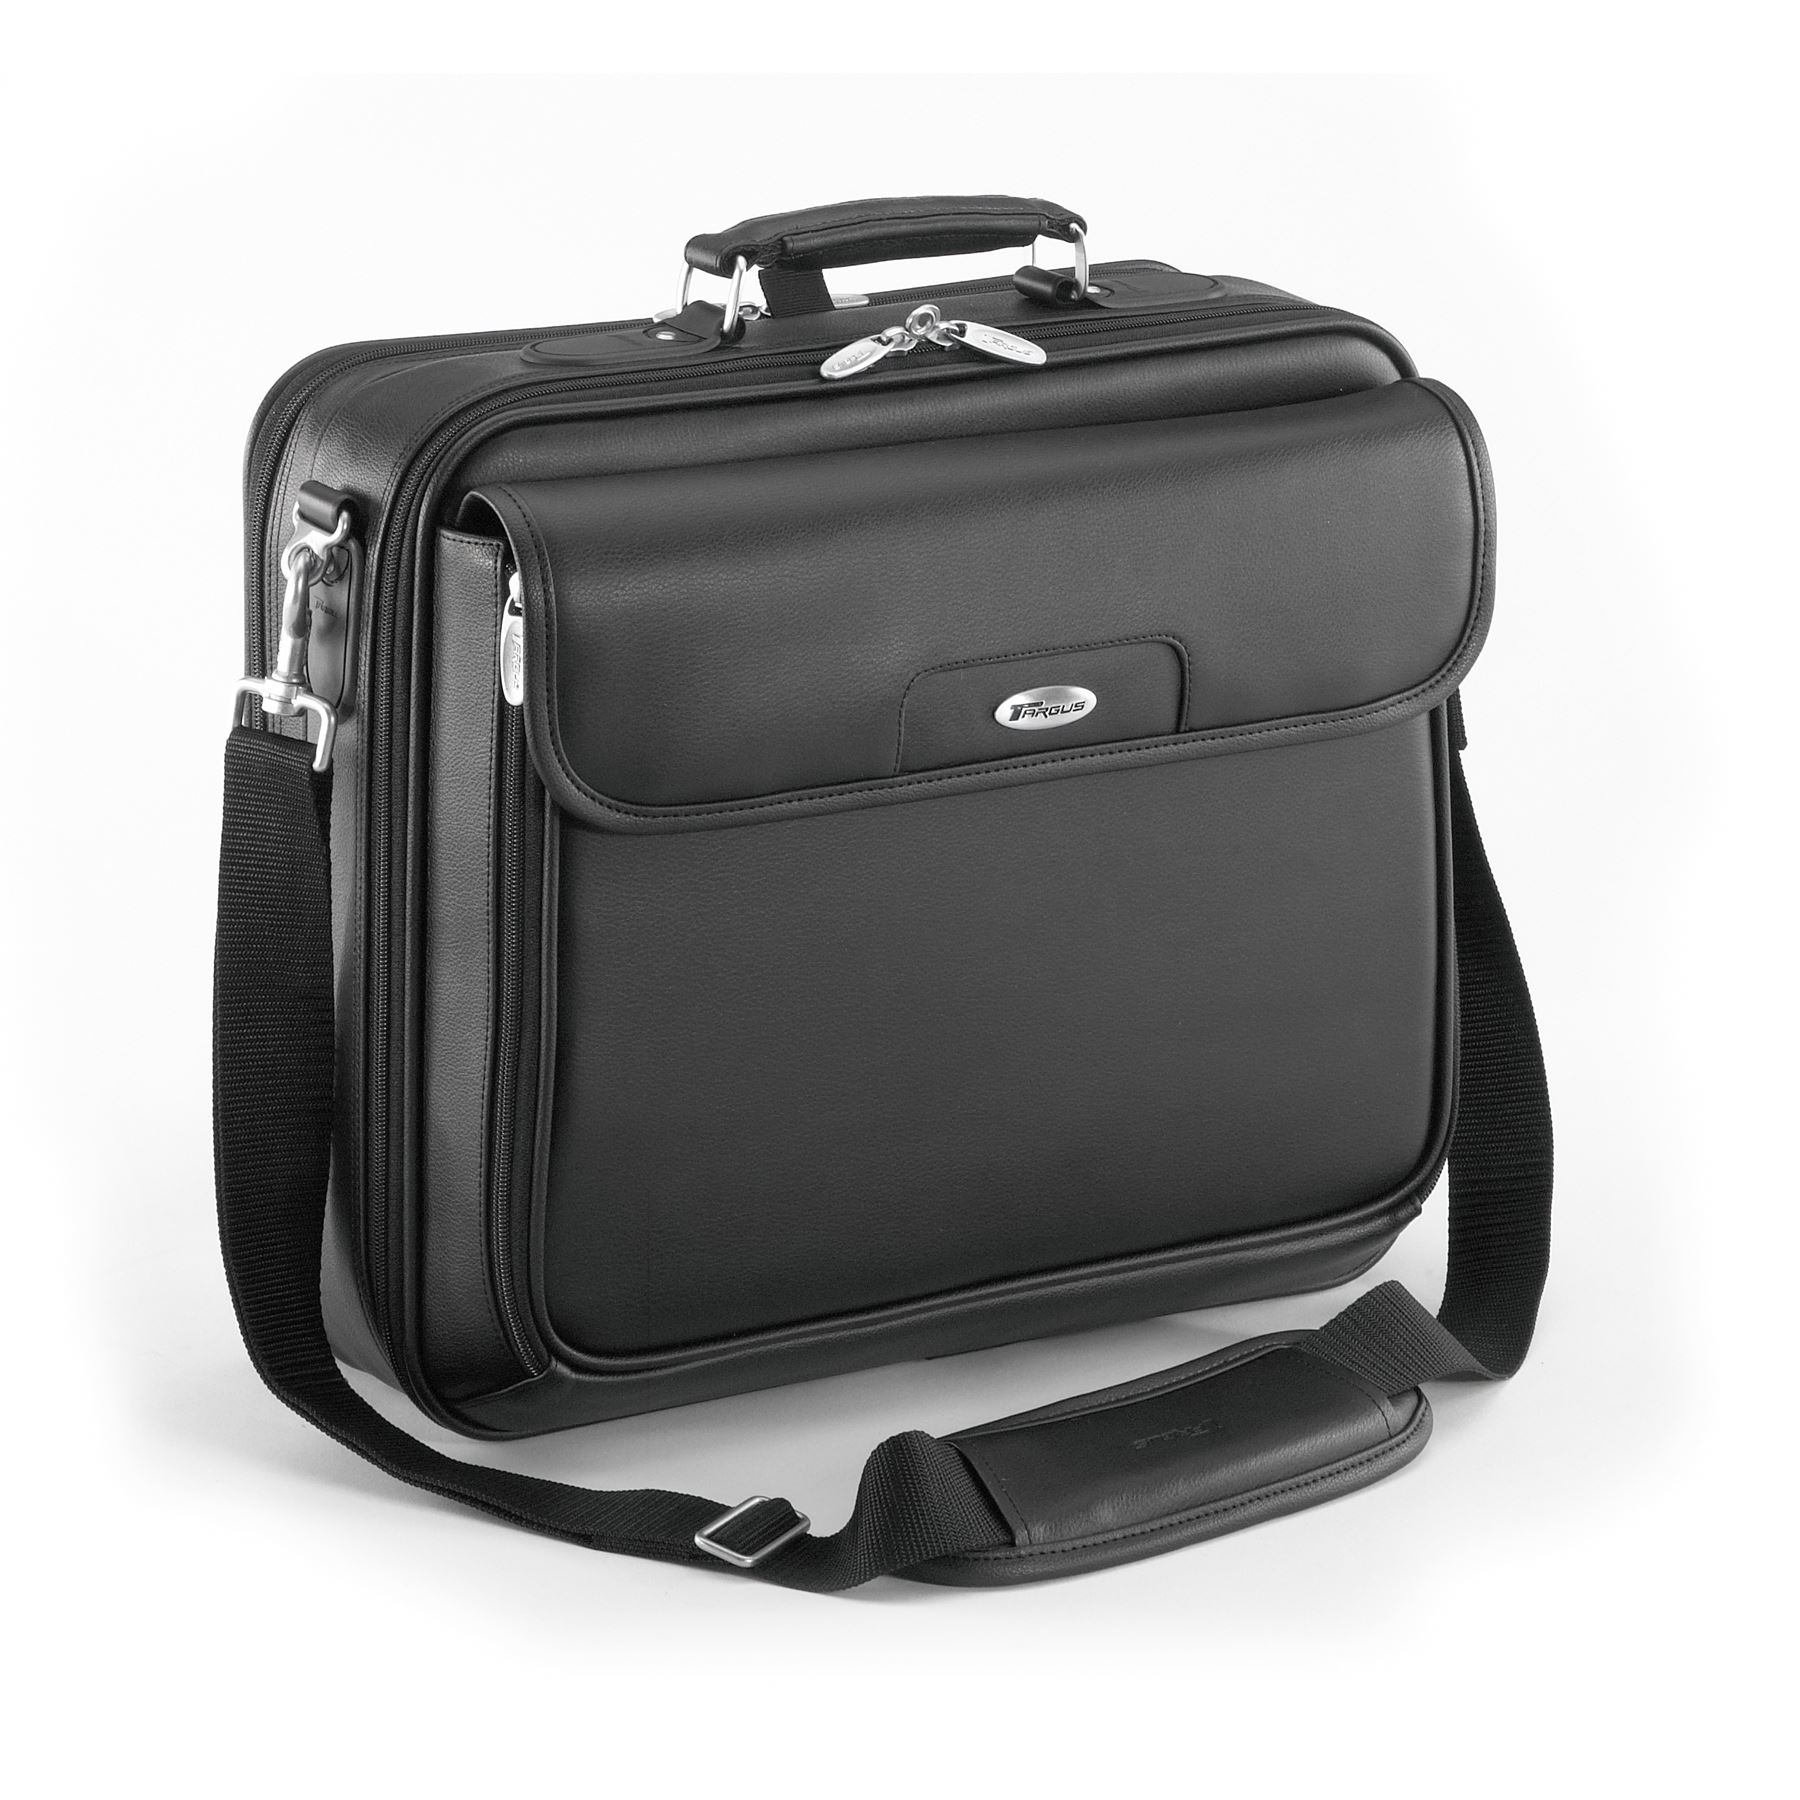 Leather Laptop Cases The working professional who is most concerned about their appearance and the quality of their business accessories will love our Leather Laptop mundo-halflife.tk you'll find laptop bags and cases made of both genuine leather and distressed leather.